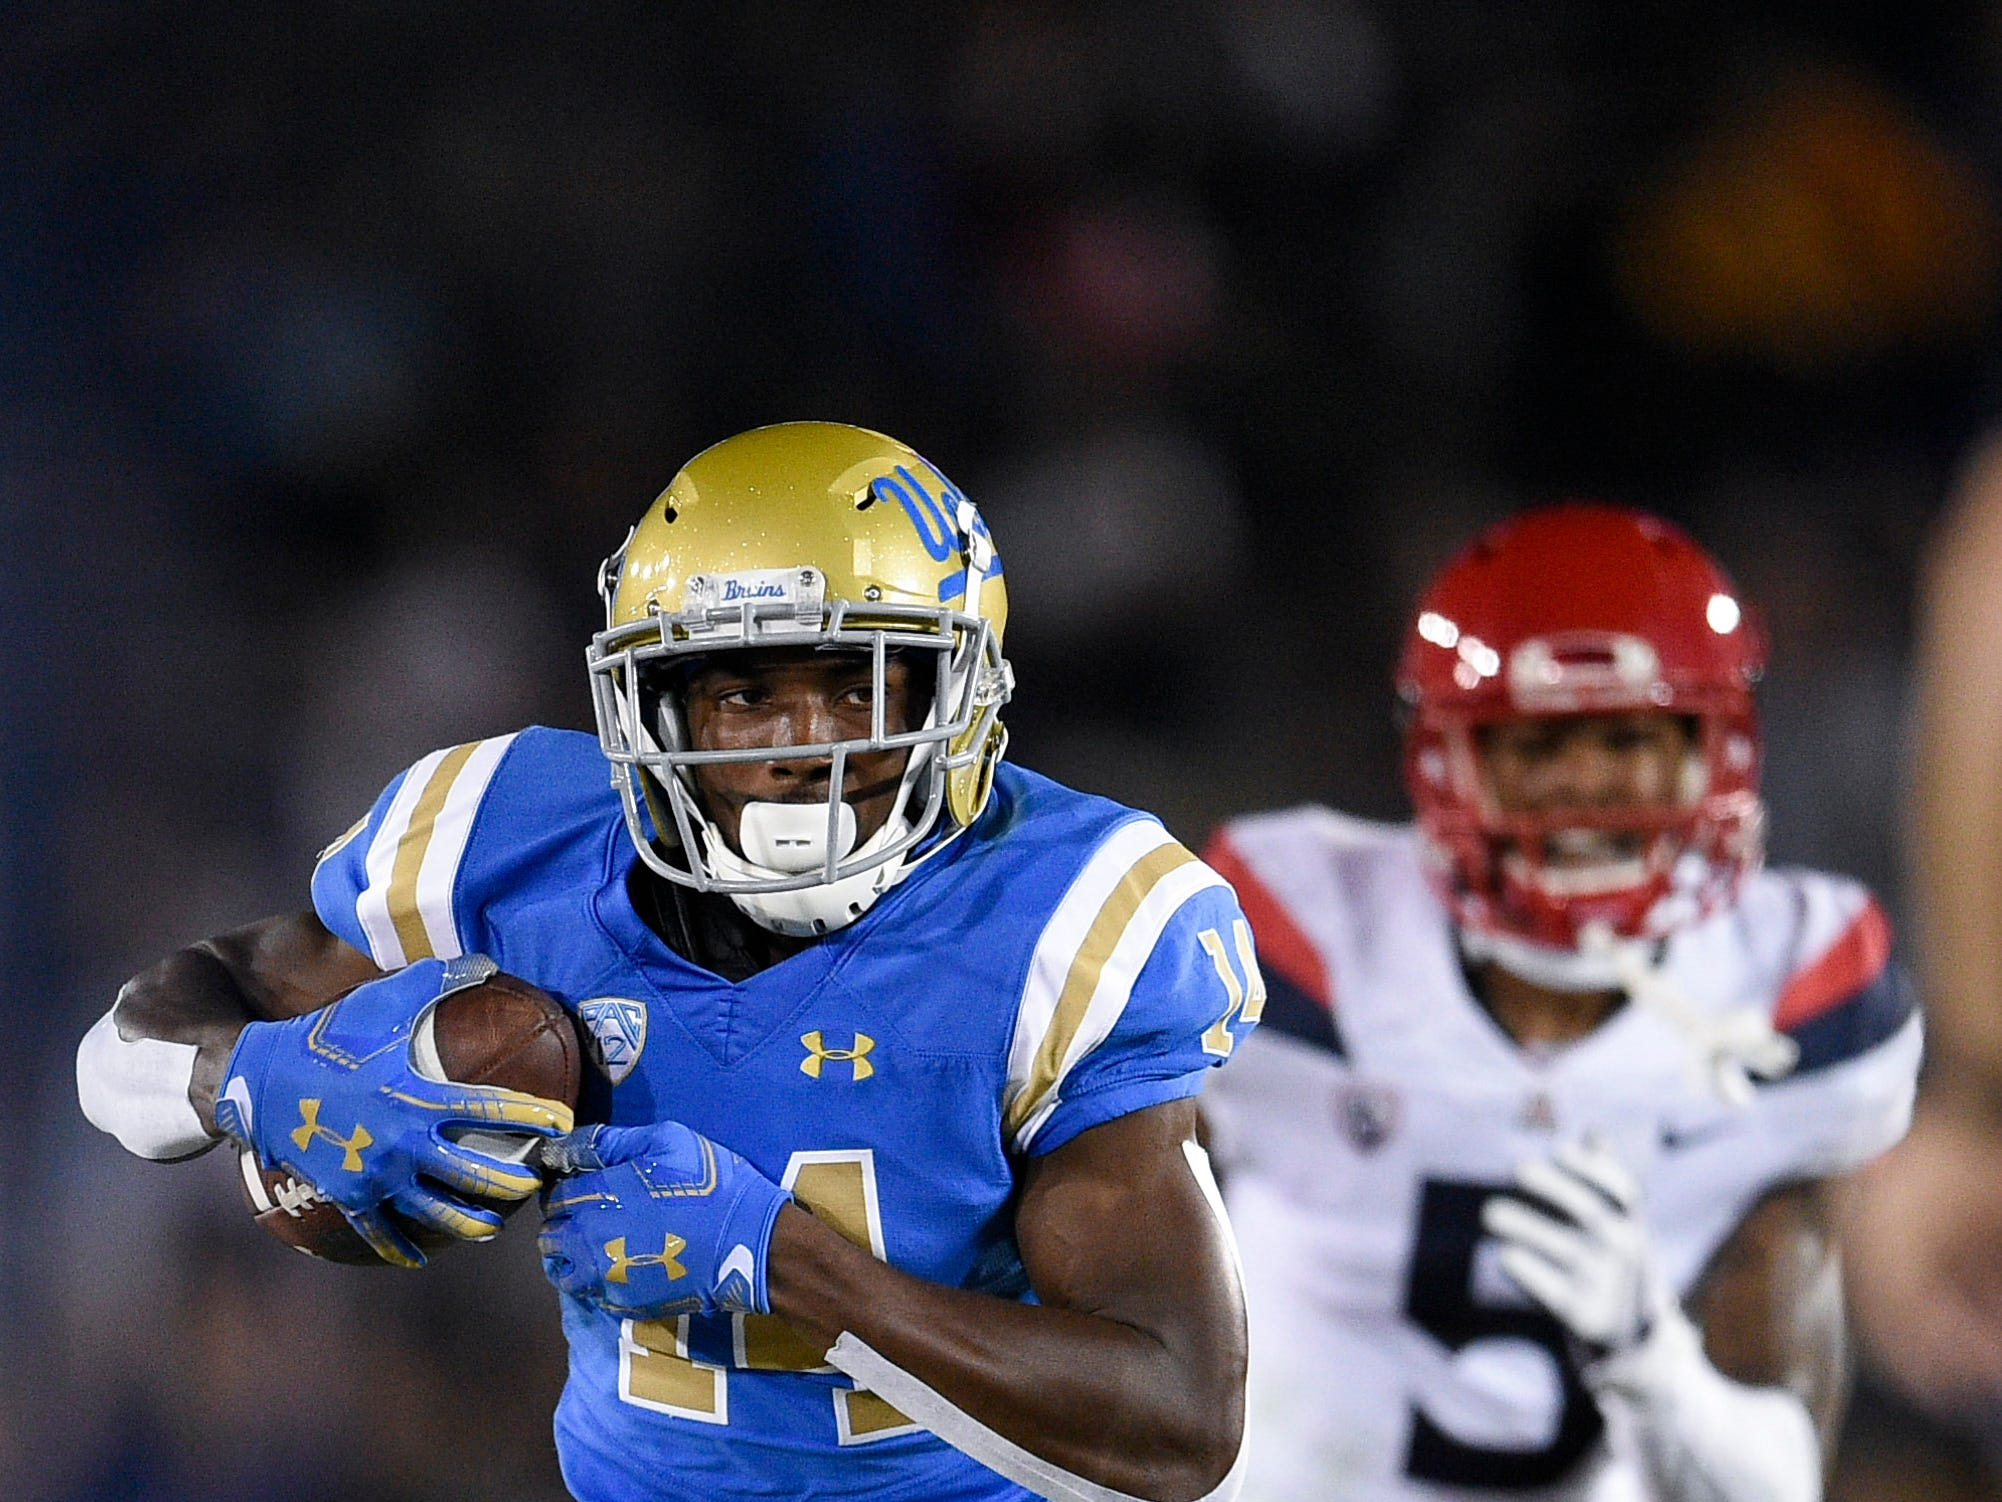 Oct 20, 2018; Pasadena, CA, USA; UCLA Bruins wide receiver Theo Howard (14) runs the ball after the catch ahead of Arizona Wildcats safety Christian Young (5) during the first half at Rose Bowl. Mandatory Credit: Kelvin Kuo-USA TODAY Sports